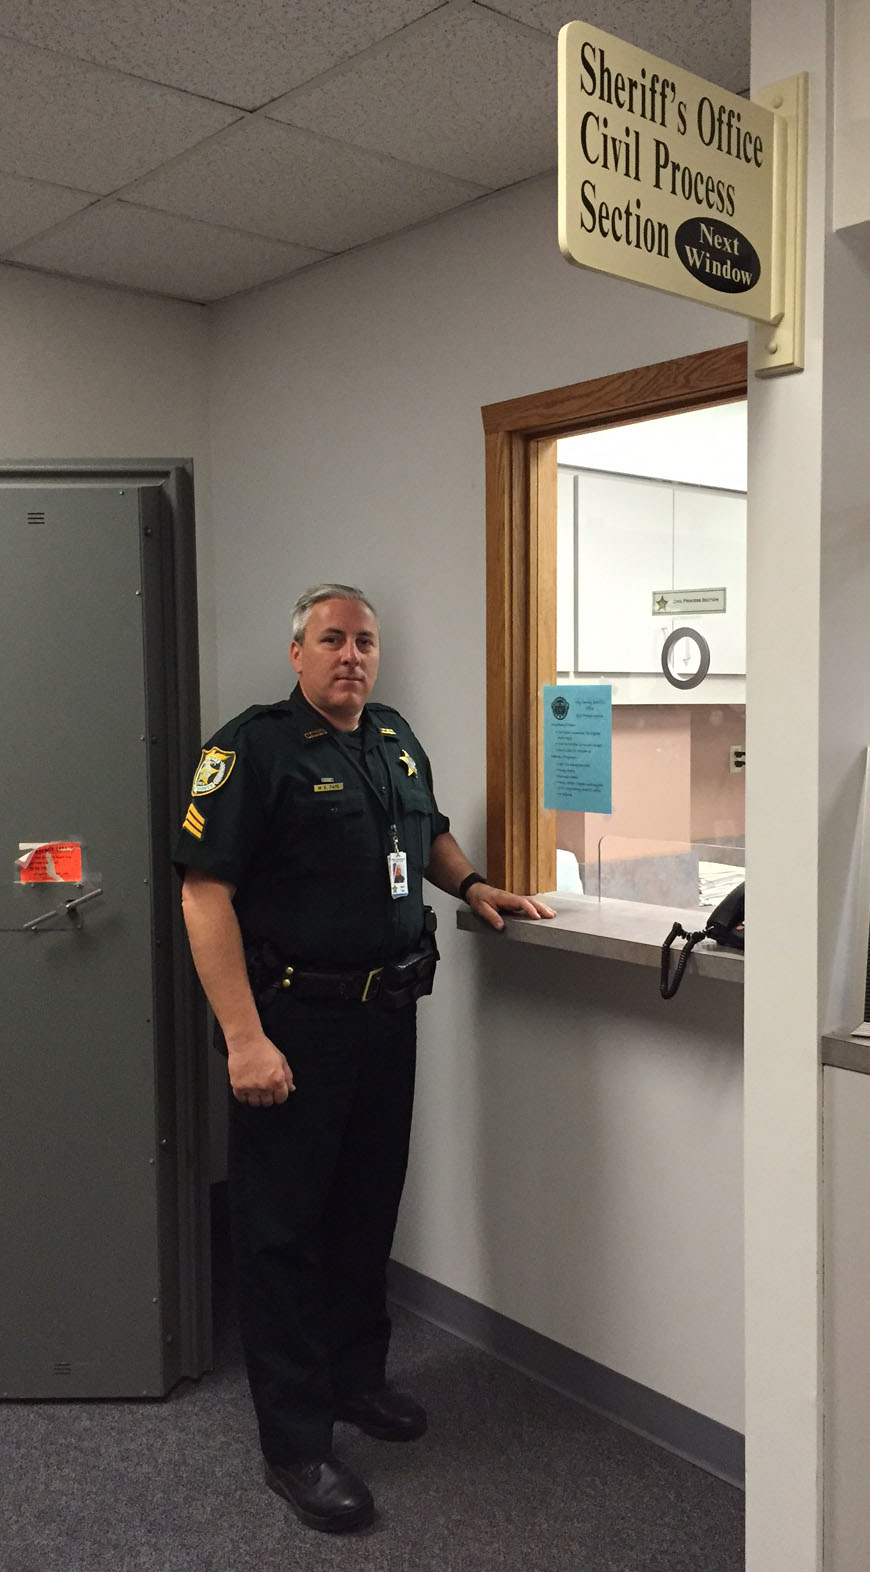 Mark Tate standing by the processing window of the Clay County Sheriff's Office Civil Section